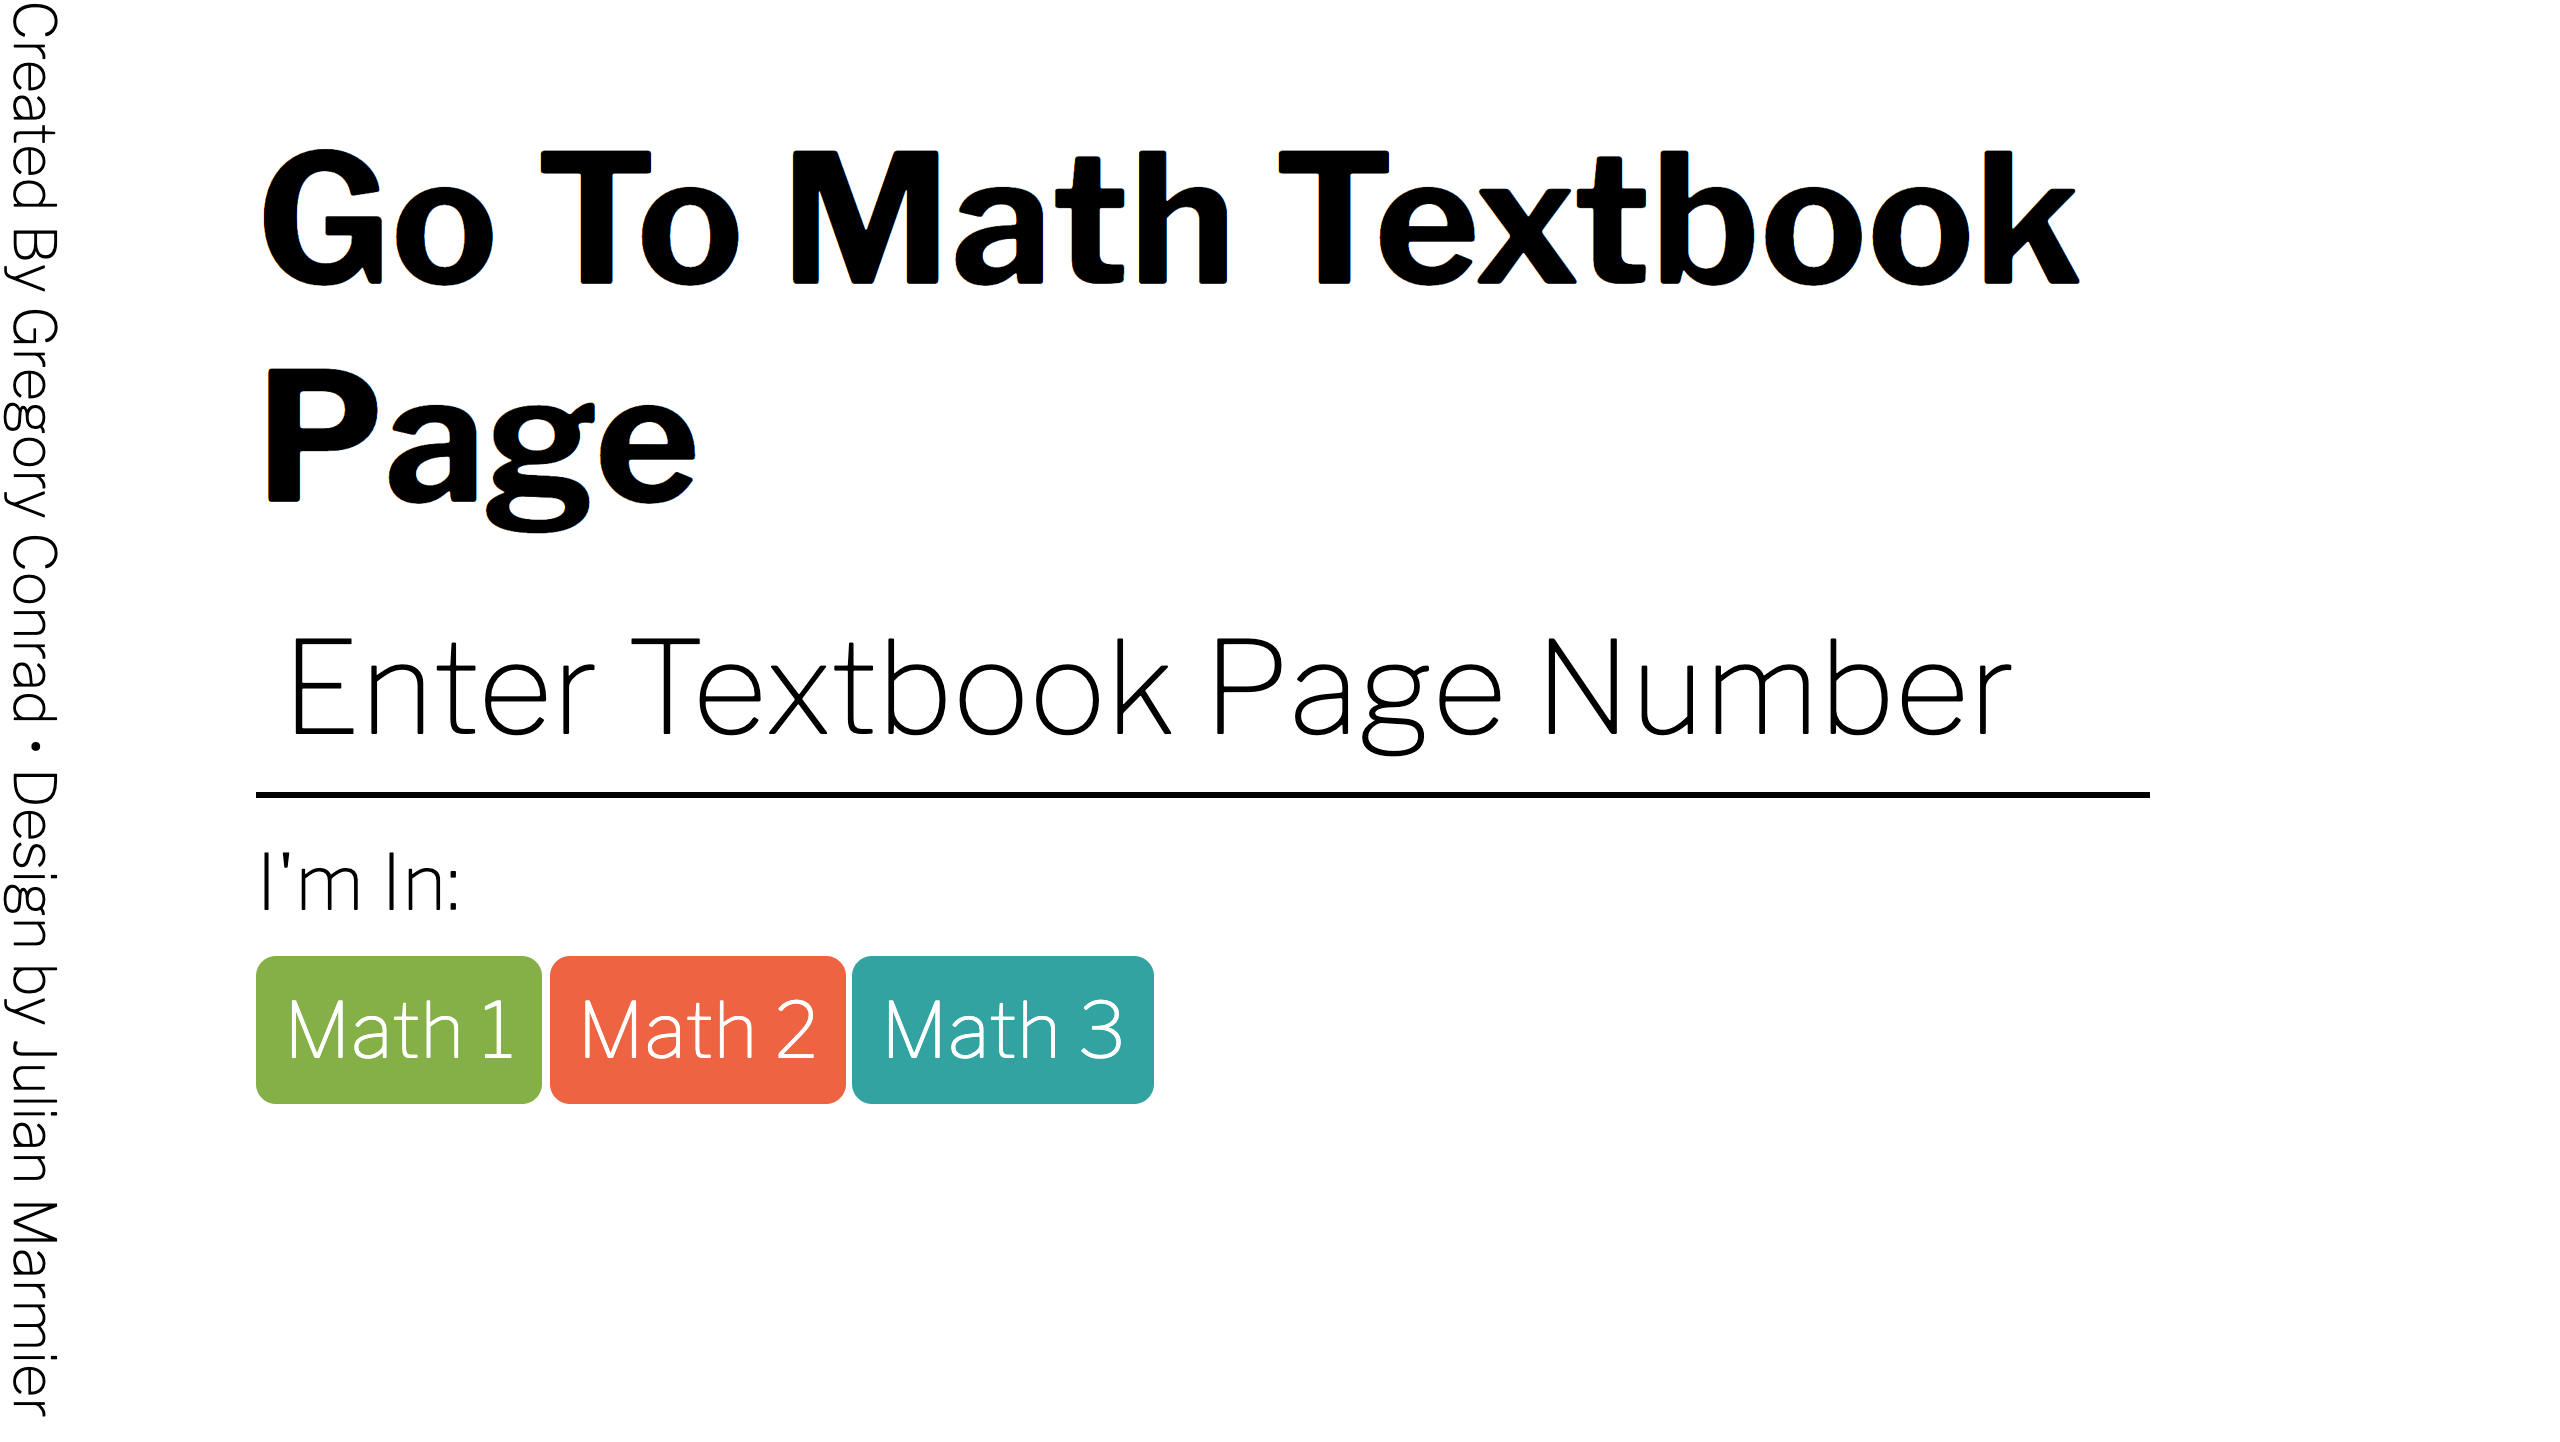 Go To Math Texbook Page - Website